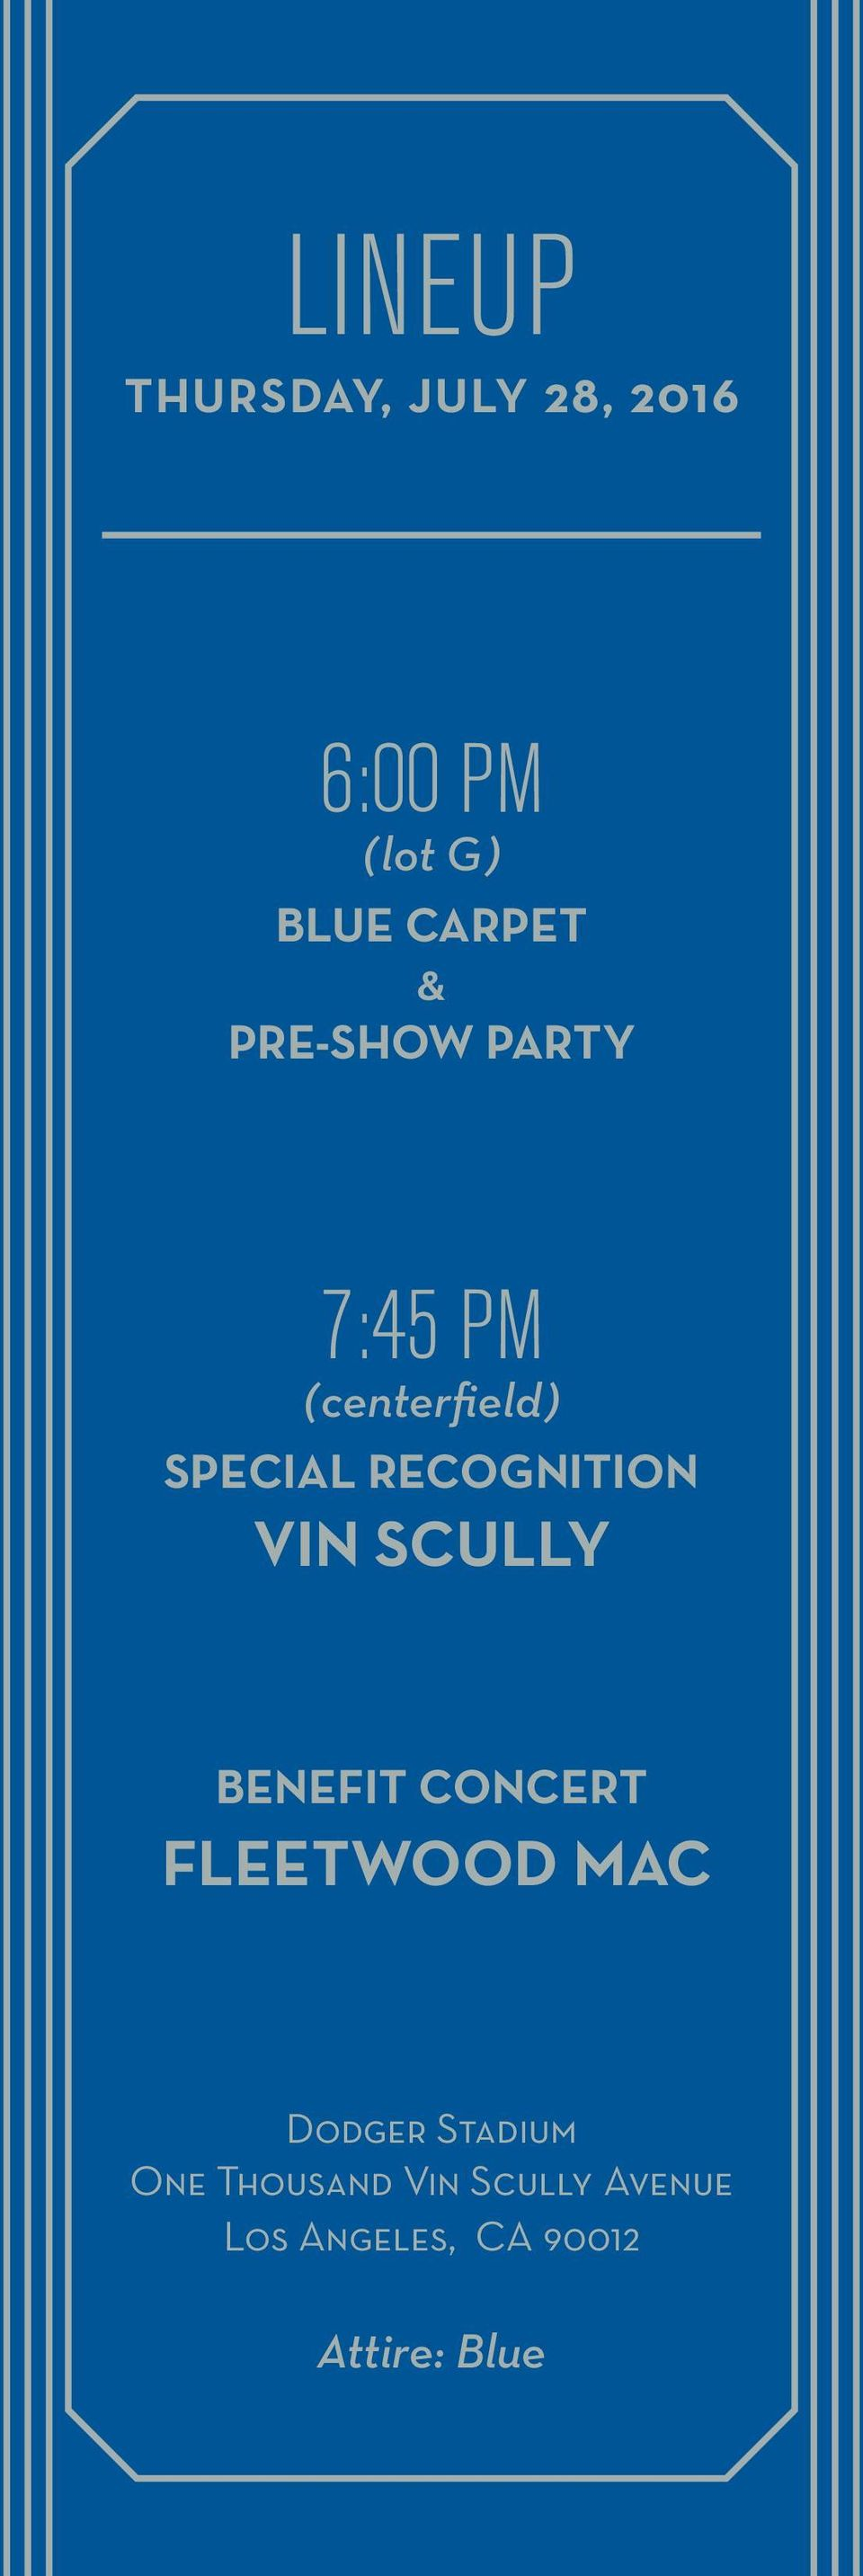 VIN SCULLY BENEFIT CONCERT FLEETWOOD MAC Dodger Stadium One